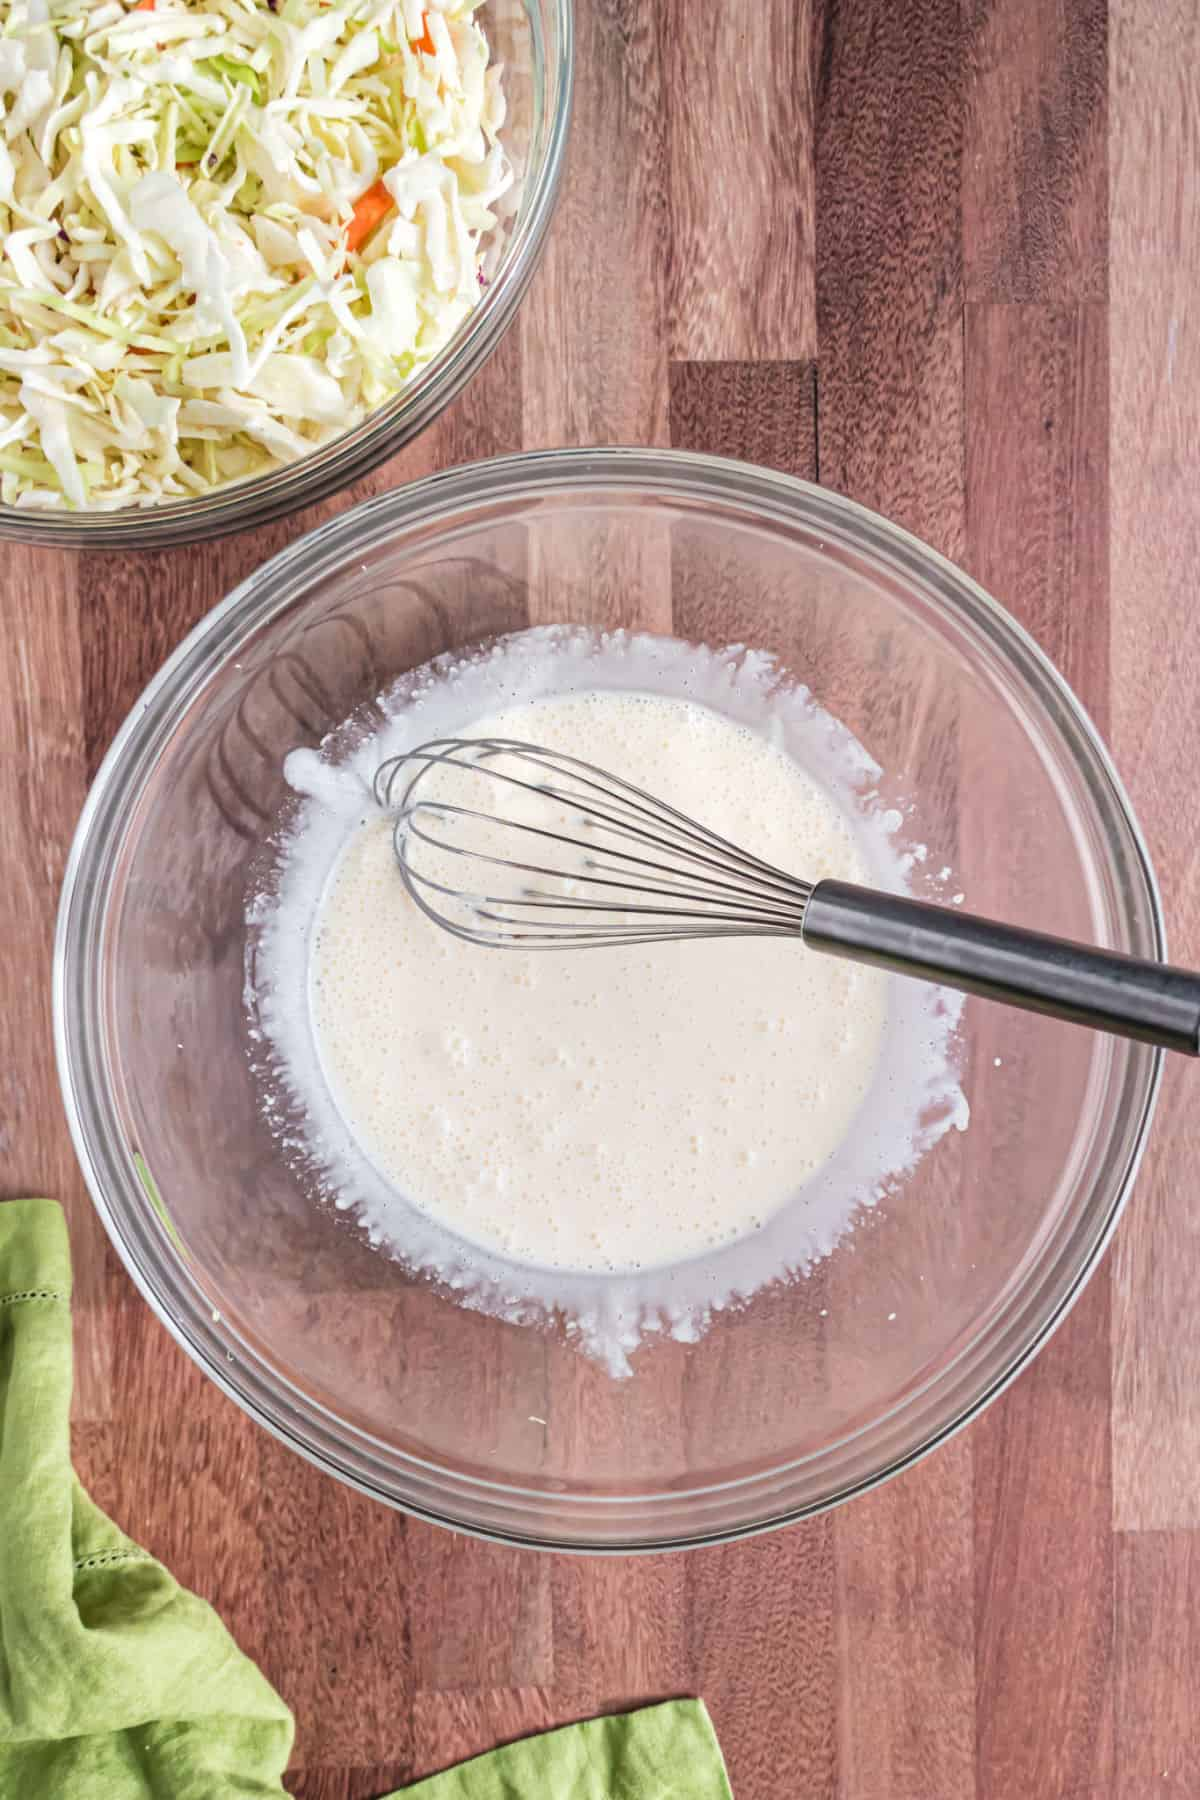 Dressing for coleslaw in a clear glass bowl with a whisk.